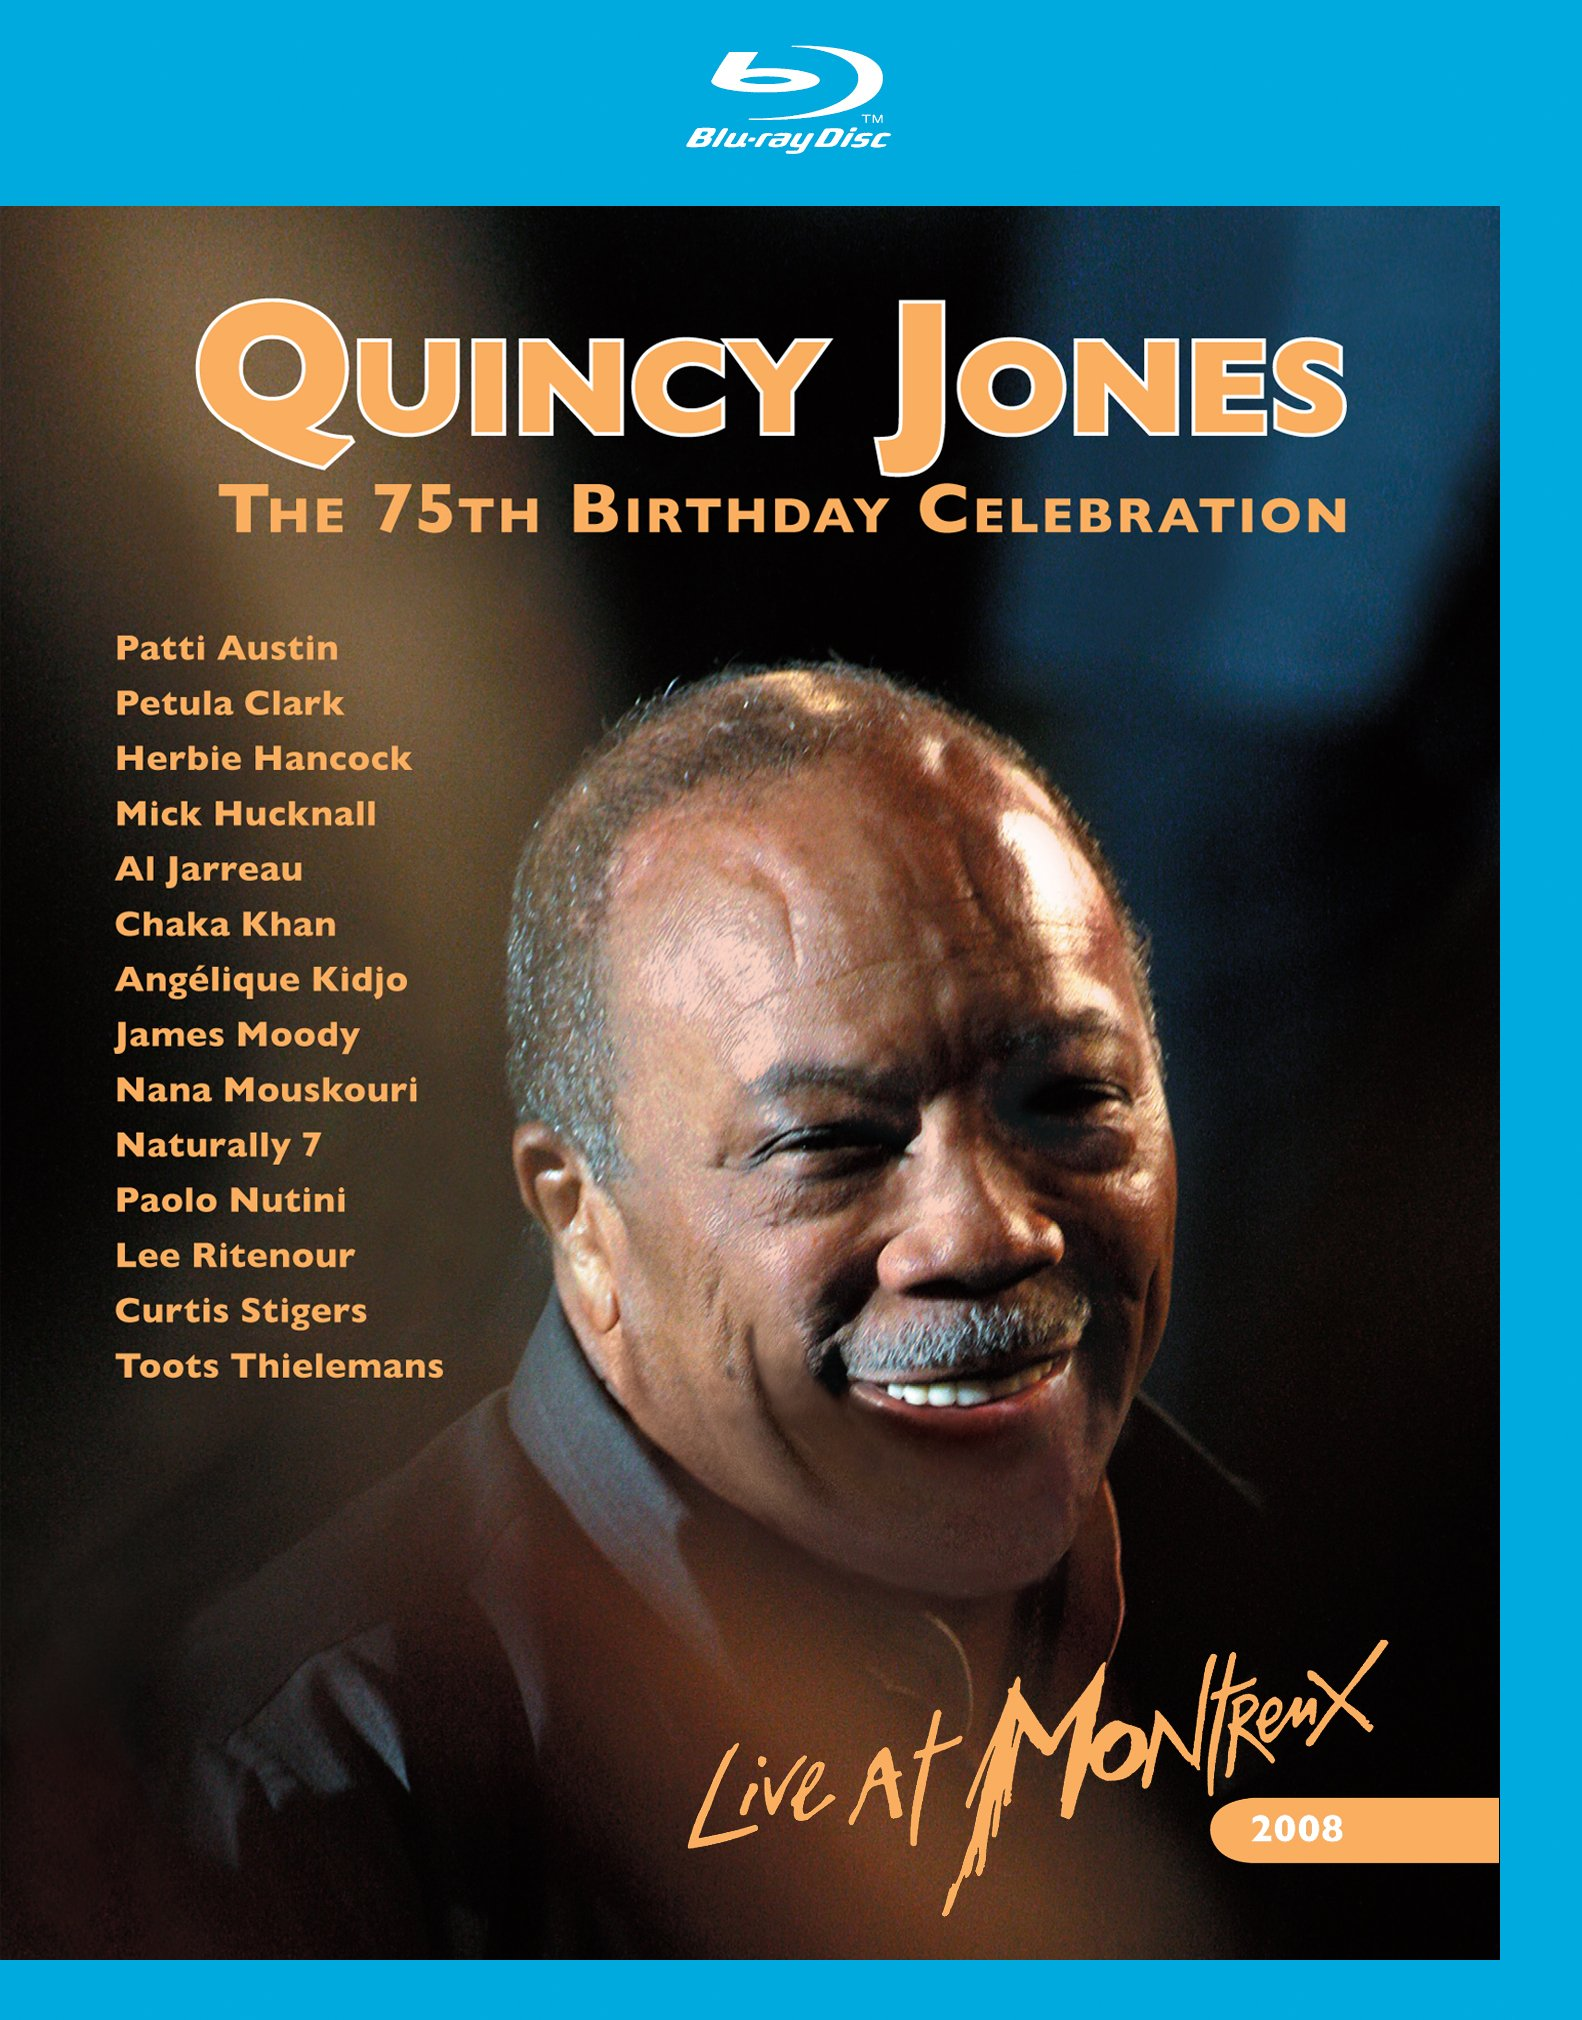 Blu-ray : Quincy Jones - The 75th Birthday Celebration: Live At Montreux 2008 (2 Disc)